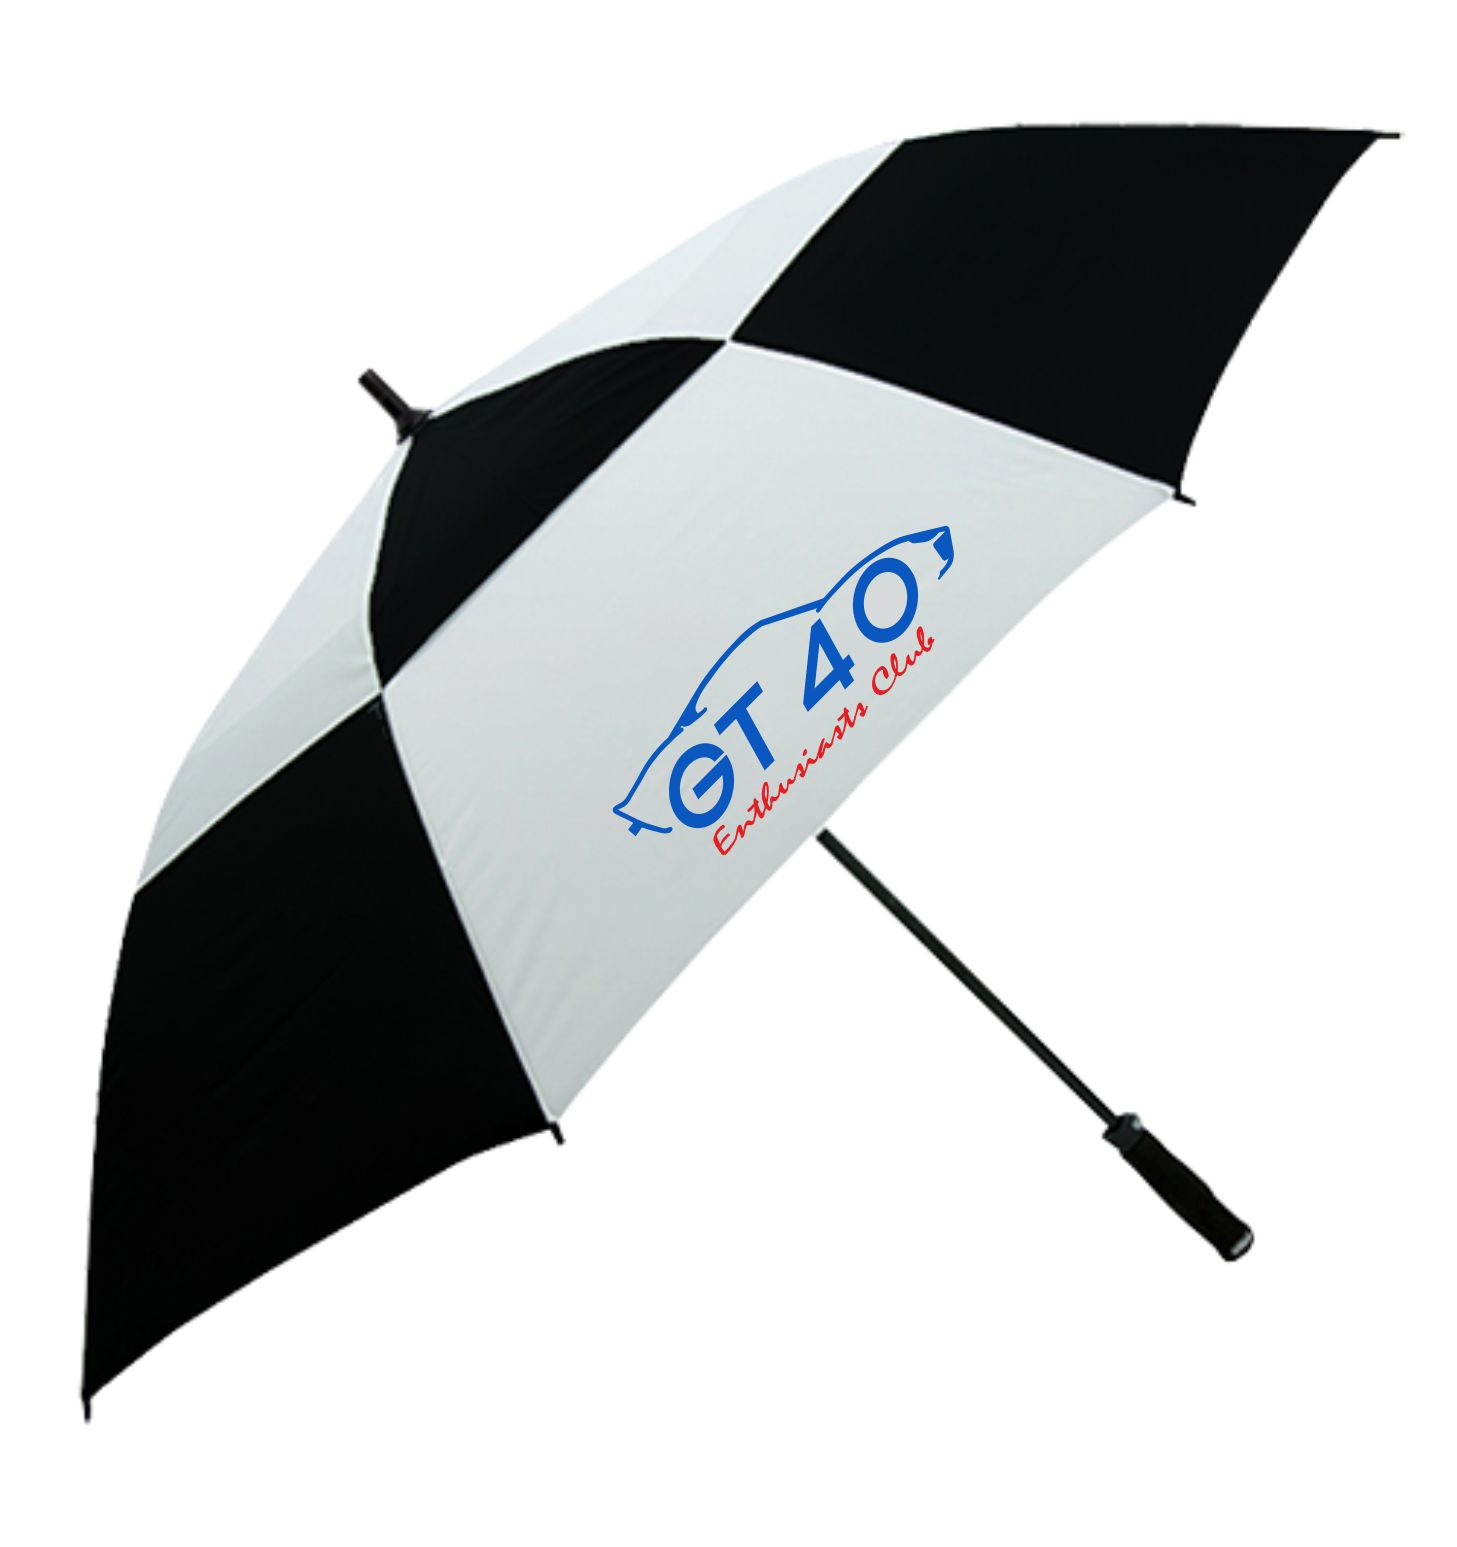 GT40 Enthusiasts Golf Umbrella